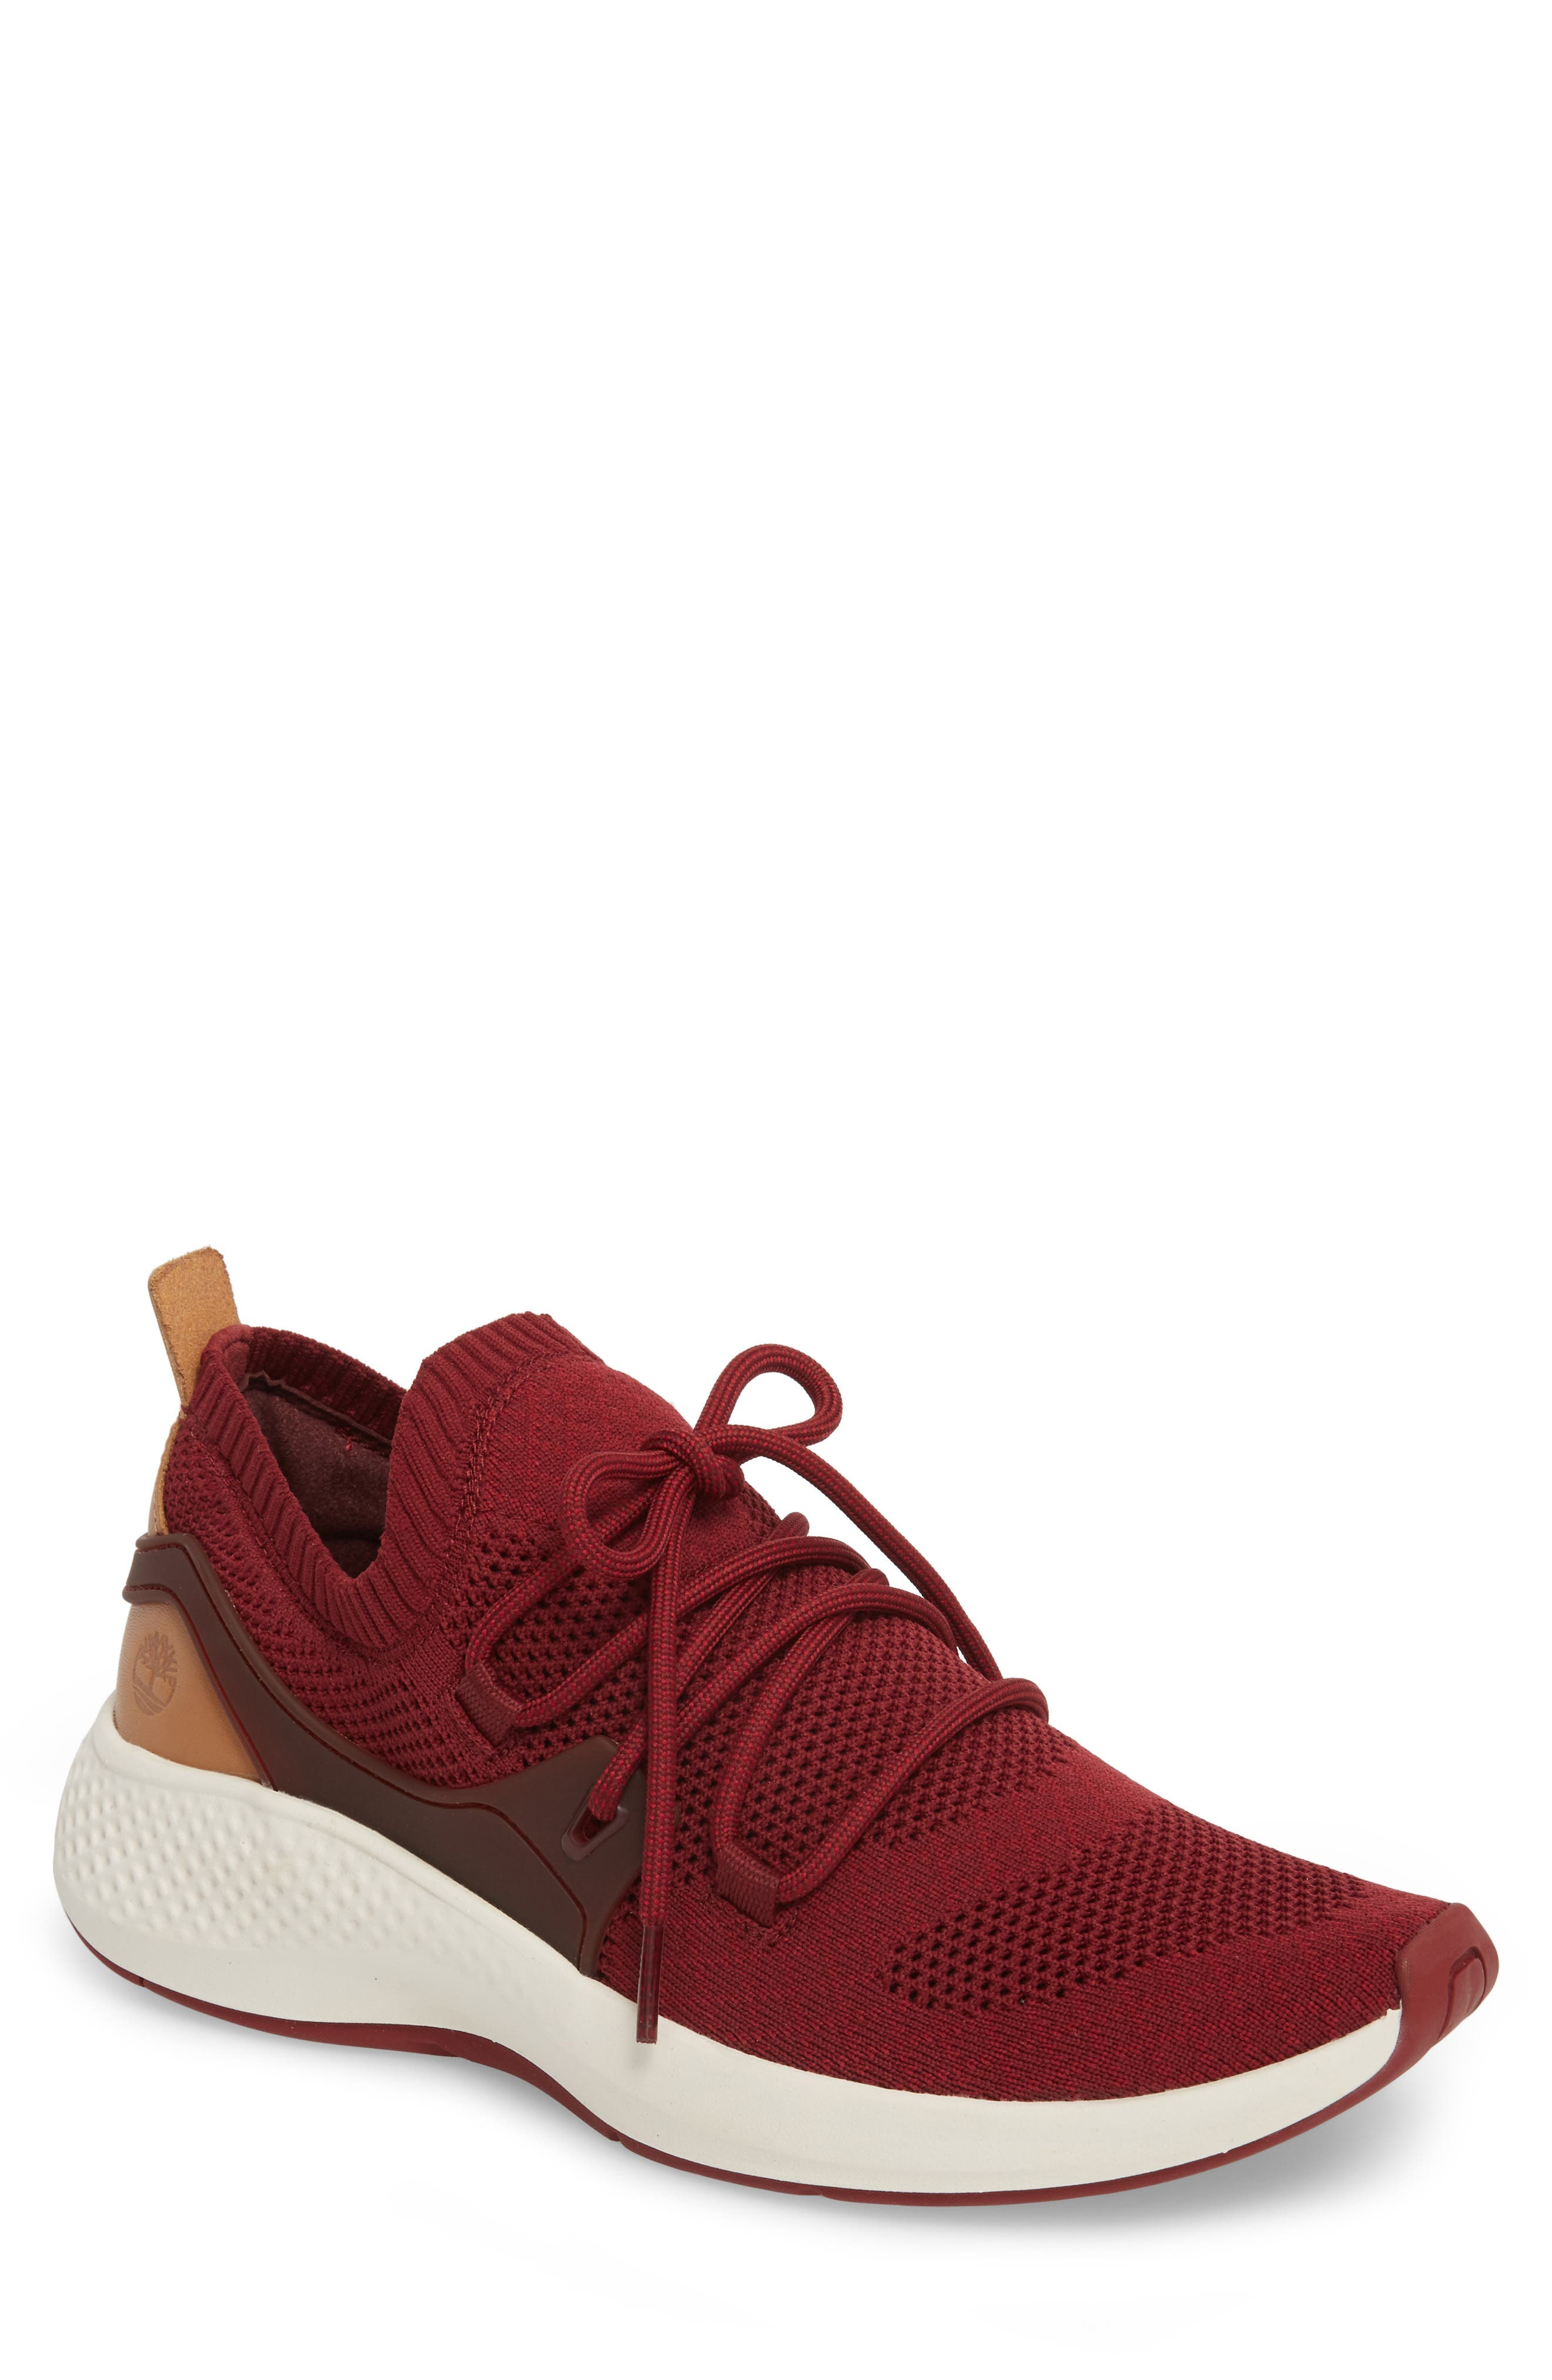 FlyRoam Sneaker,                         Main,                         color, POMEGRANATE LEATHER